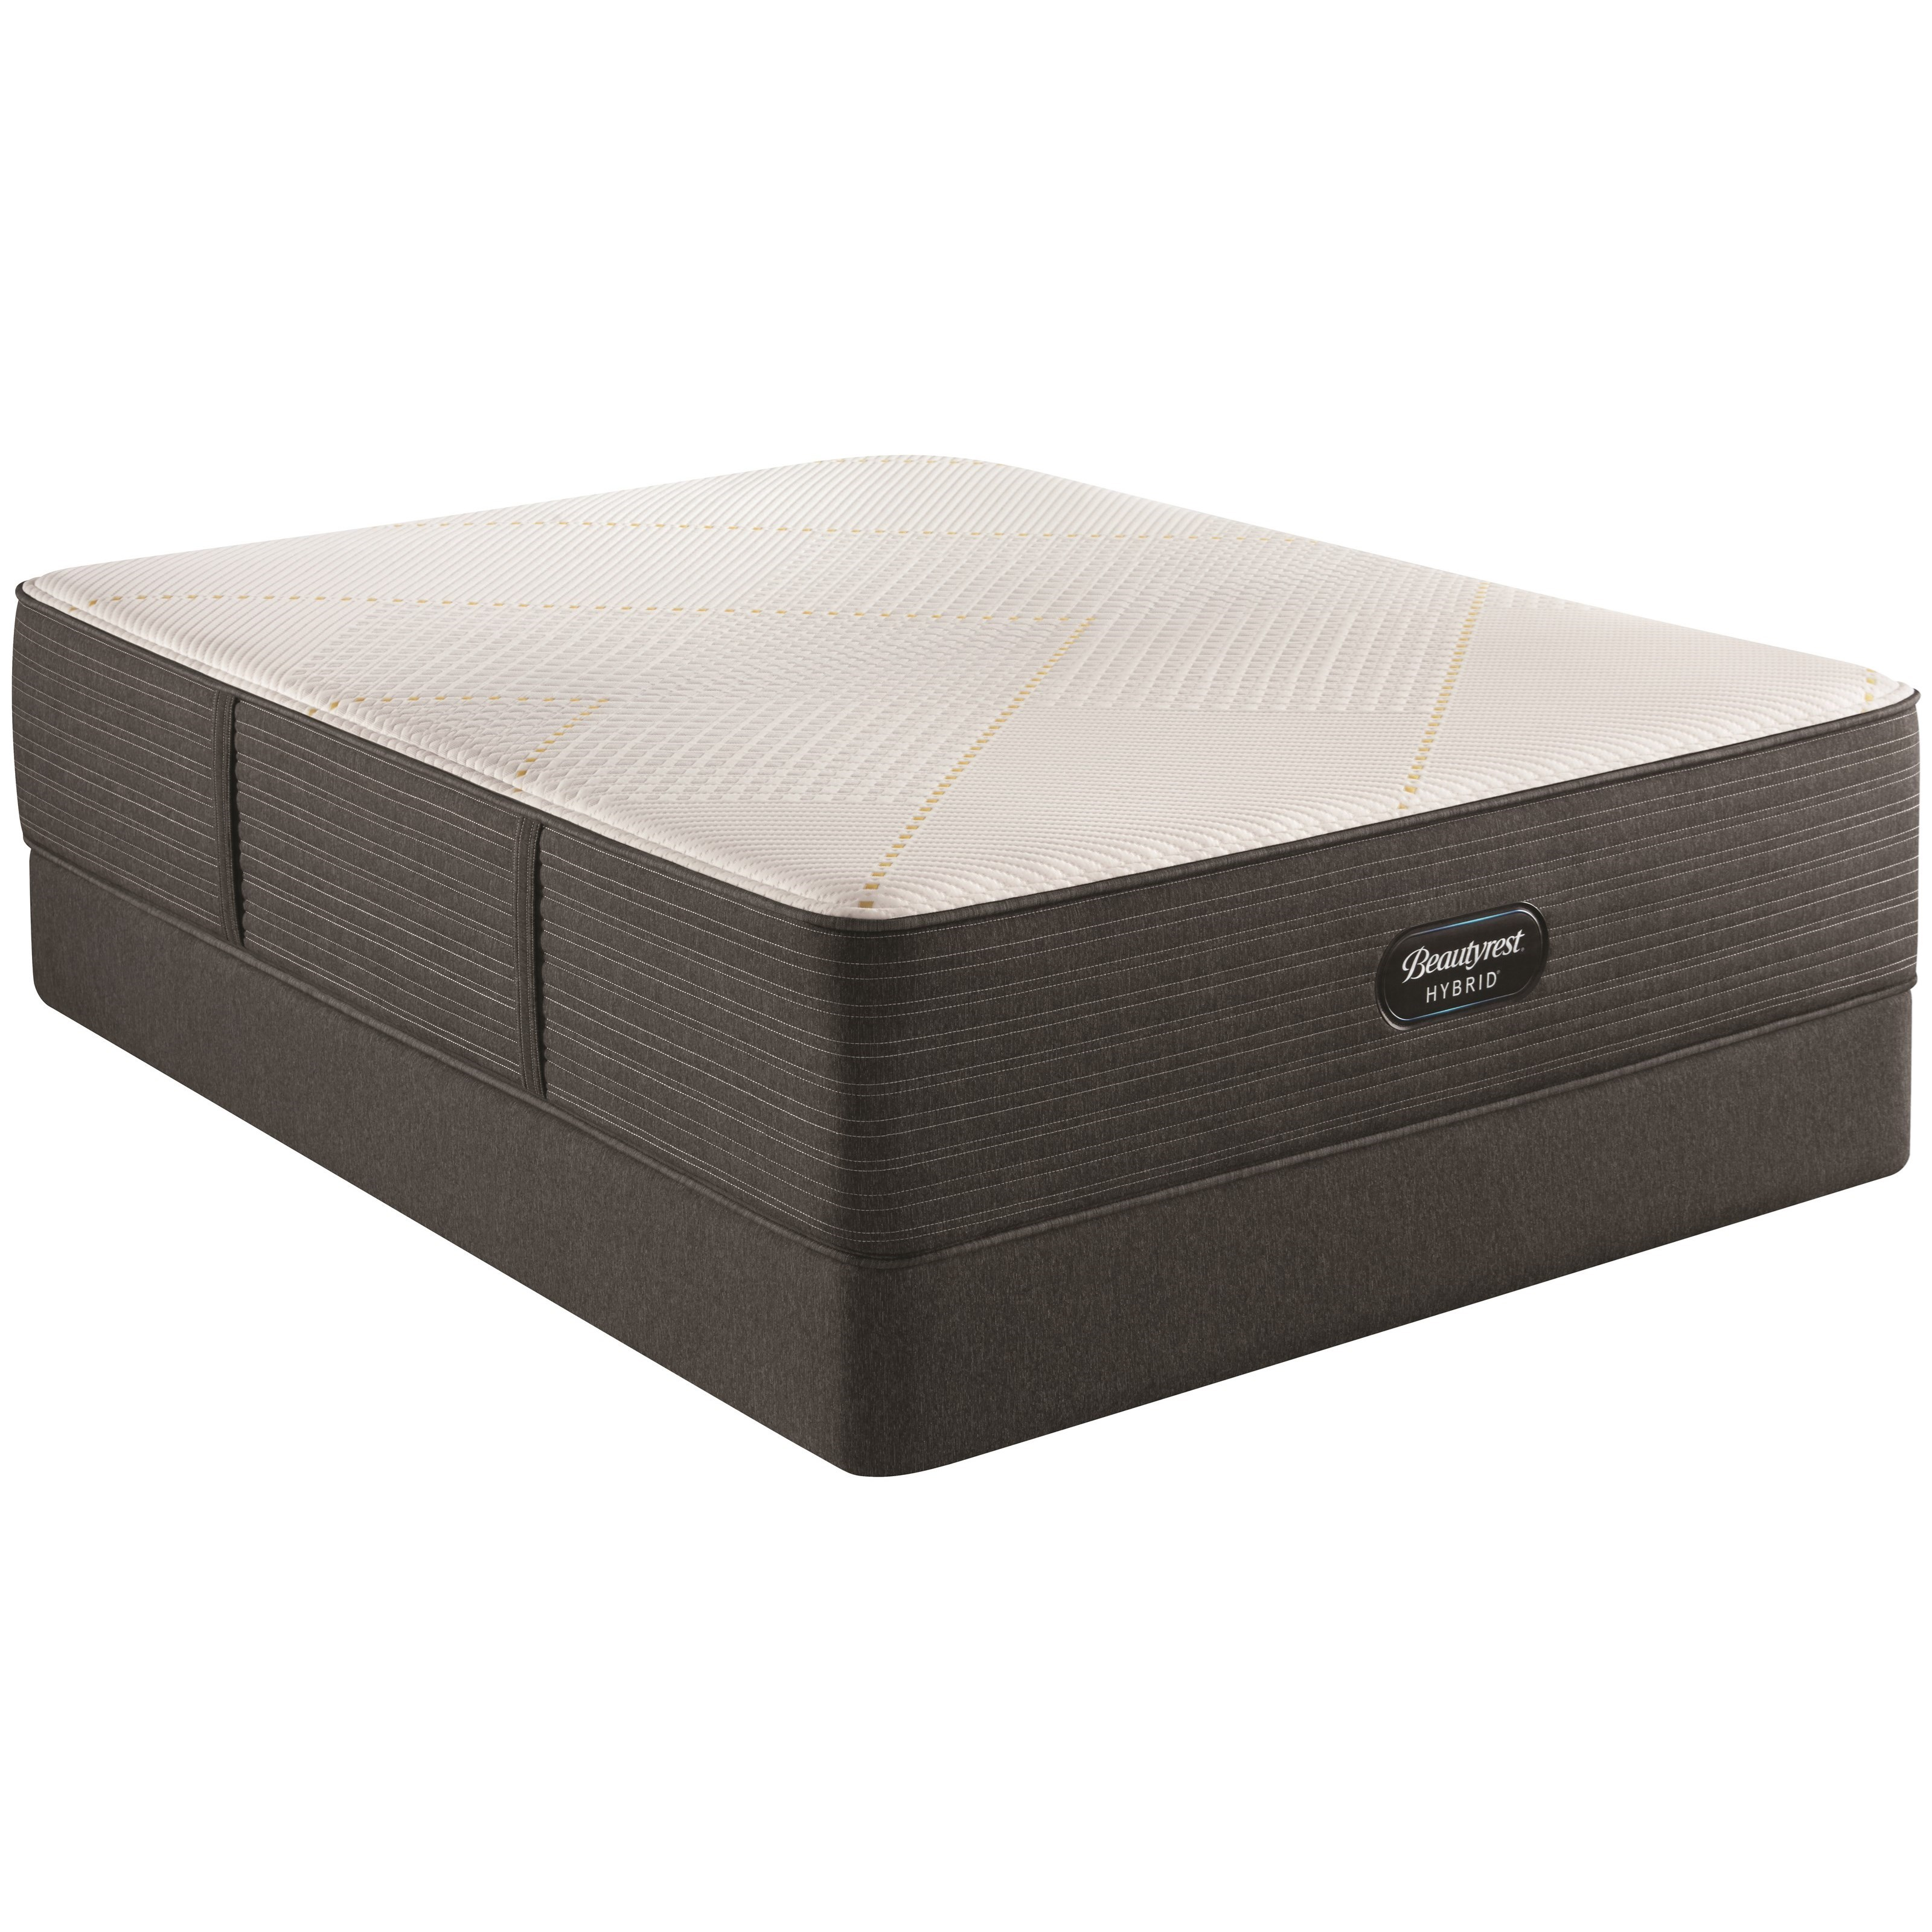 "BRX3000-IM Medium Hybrid Queen 15 1/2"" Hybrid Mattress Set by Beautyrest at HomeWorld Furniture"